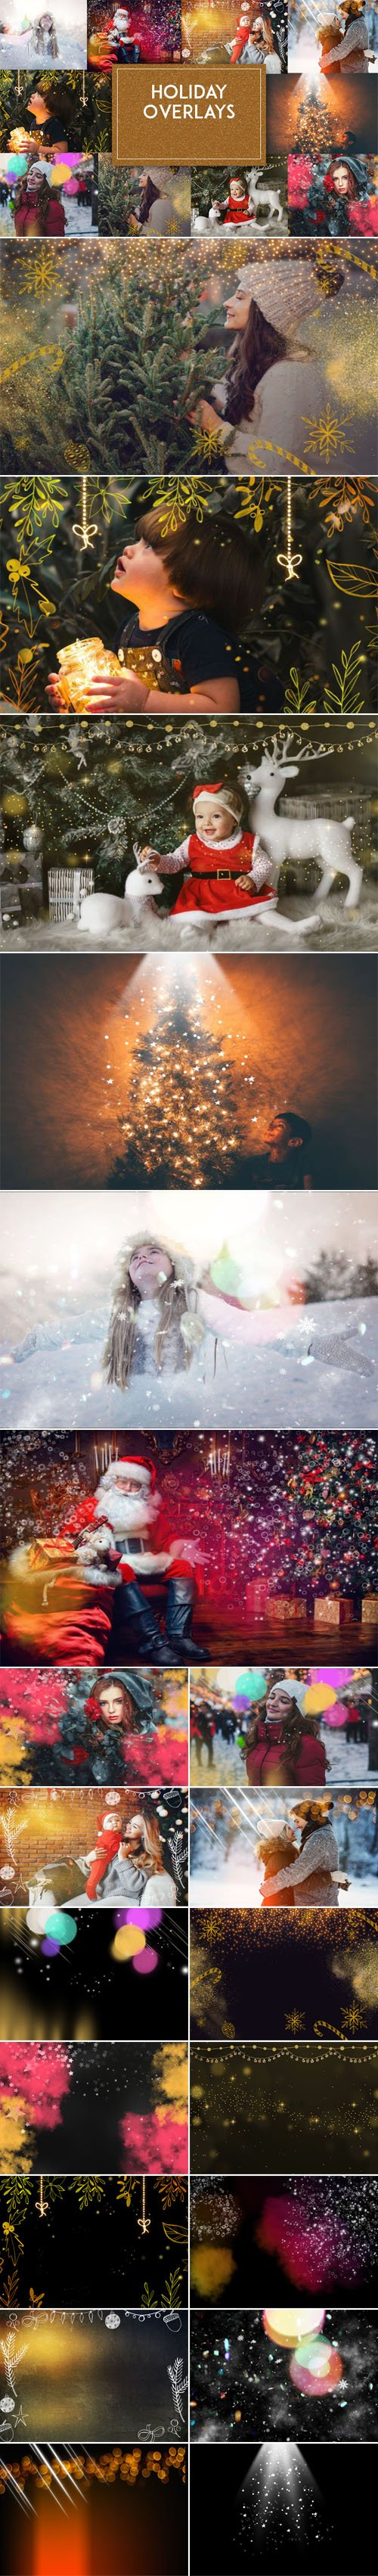 10 Beautiful Holiday Photoshop Overlays Collection